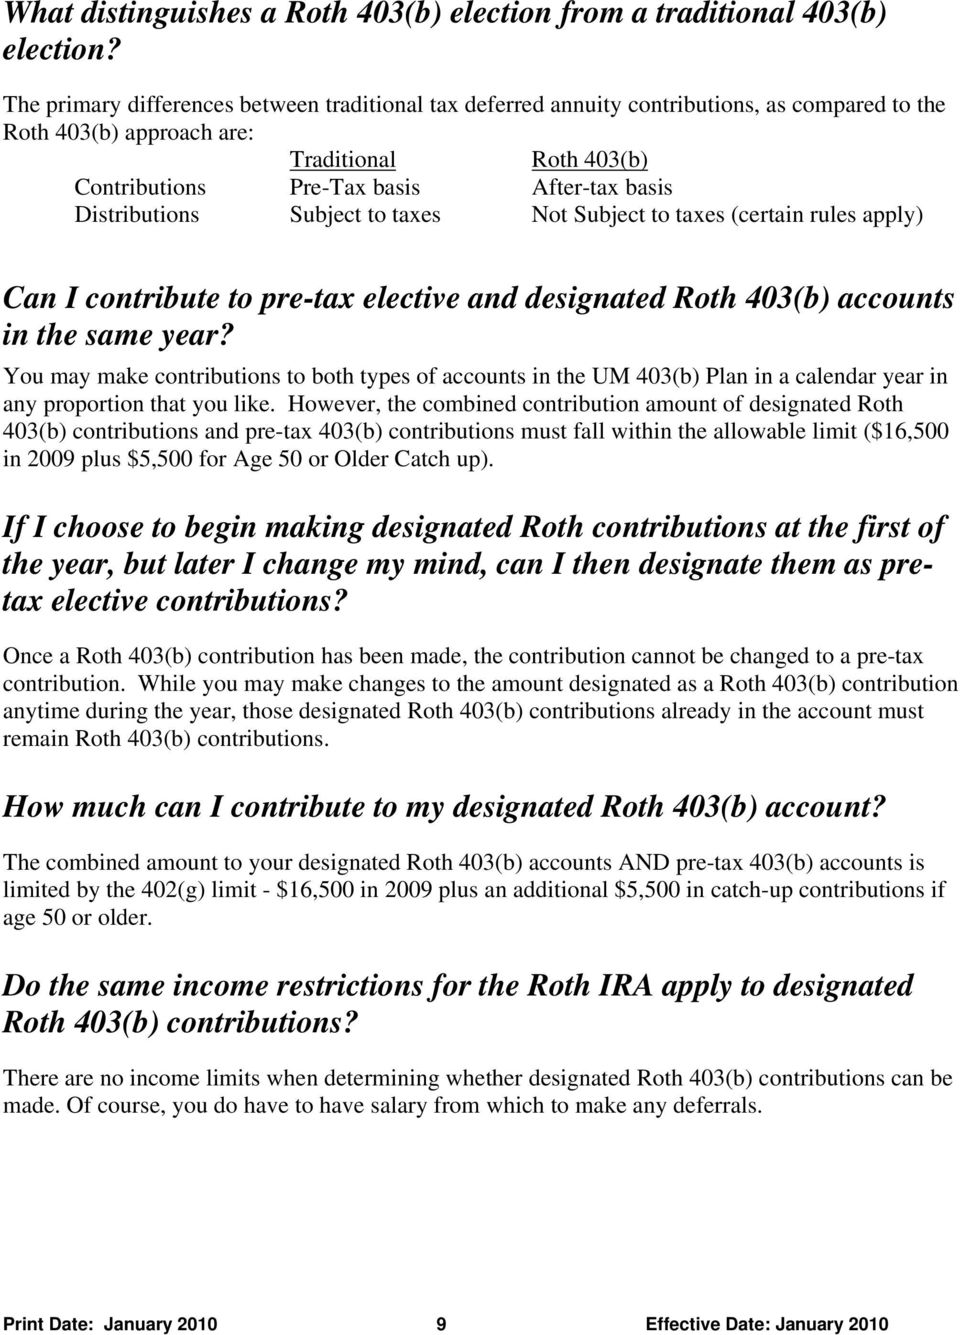 Distributions Subject to taxes Not Subject to taxes (certain rules apply) Can I contribute to pre-tax elective and designated Roth 403(b) accounts in the same year?